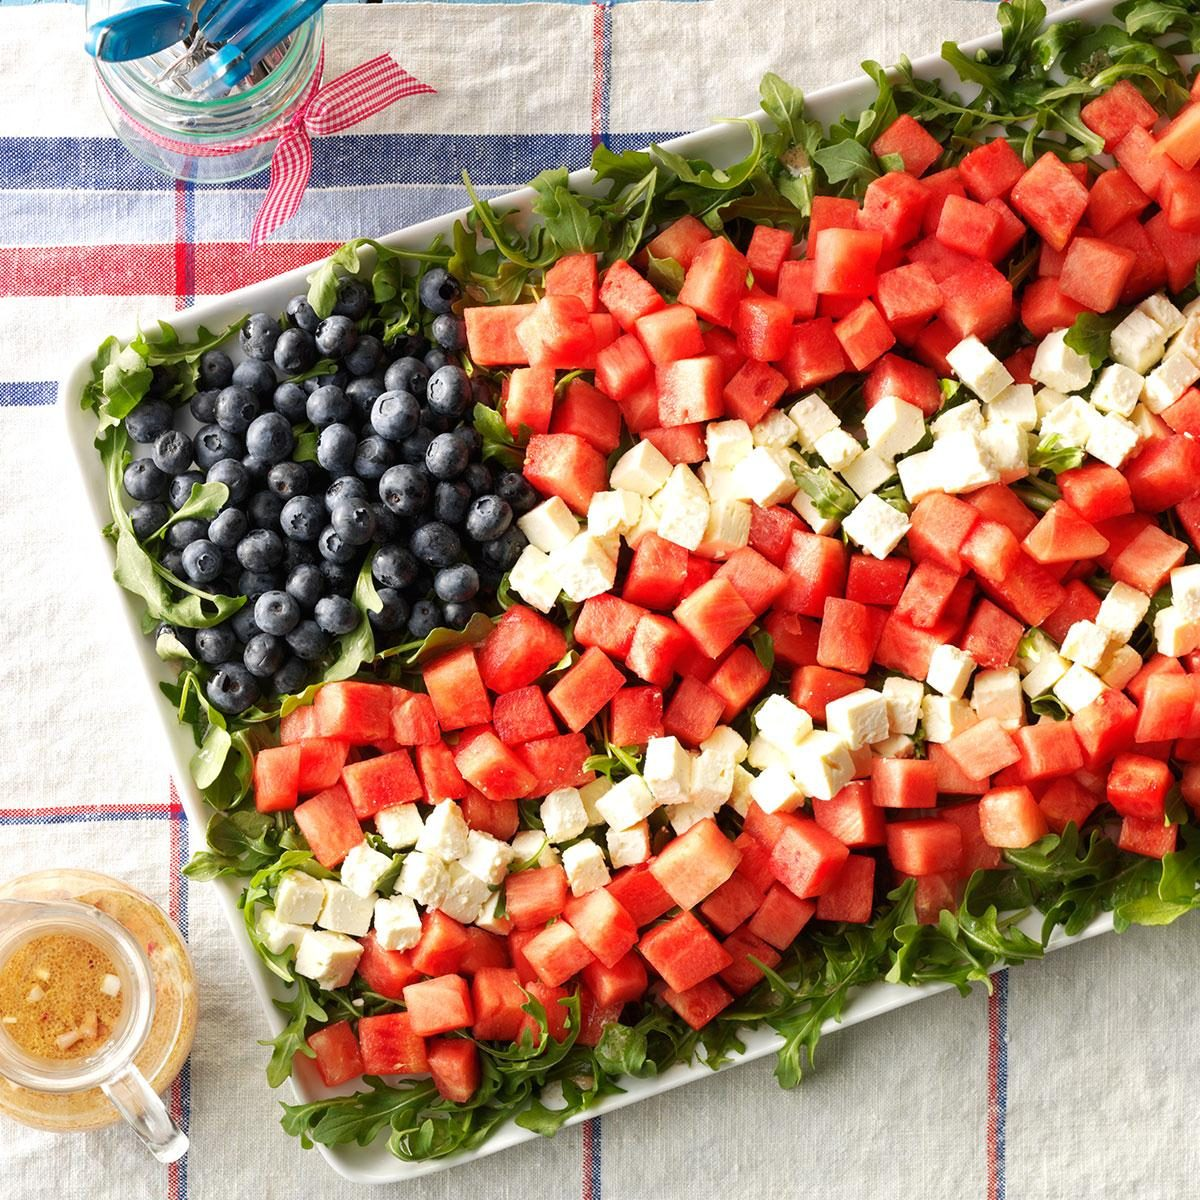 40 Easy Potluck Recipes For Your Graduation Party: 50 Potluck Salad Recipes To Feed A Crowd